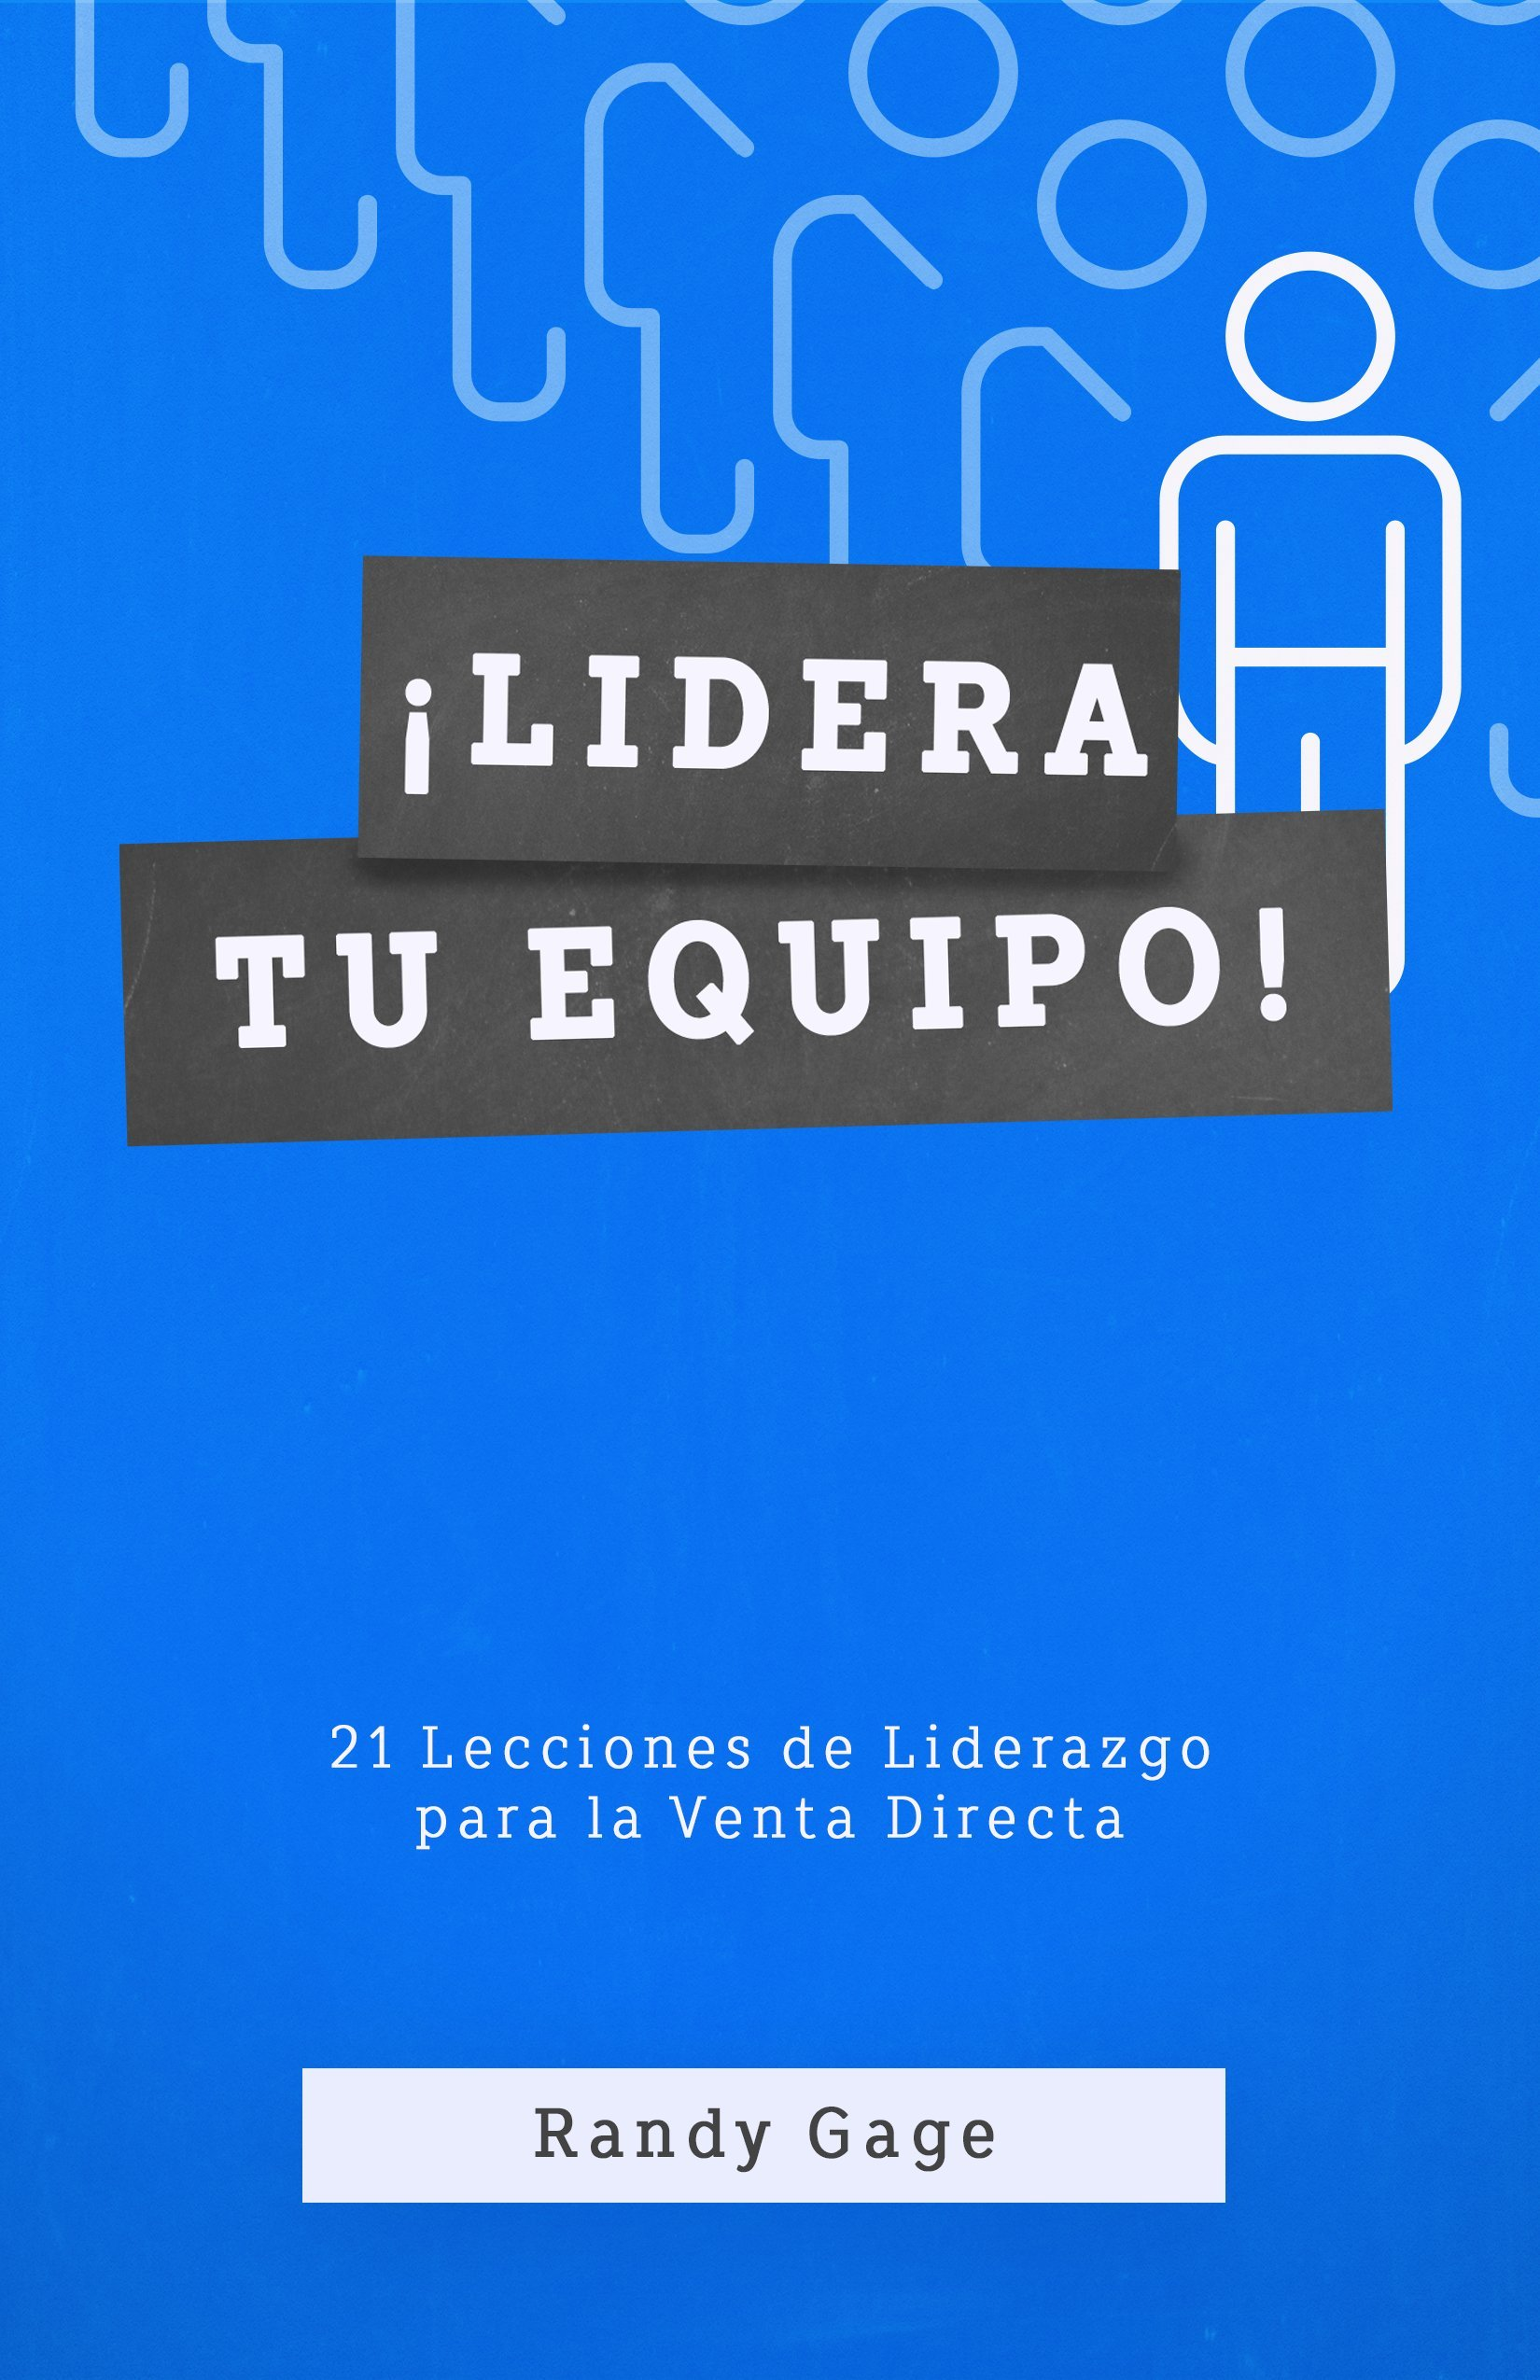 ¡Lidera tu Equipo! (Spanish Edition): Randy Gage, Prime Concepts Group, Inc.: 9781884667312: Amazon.com: Books